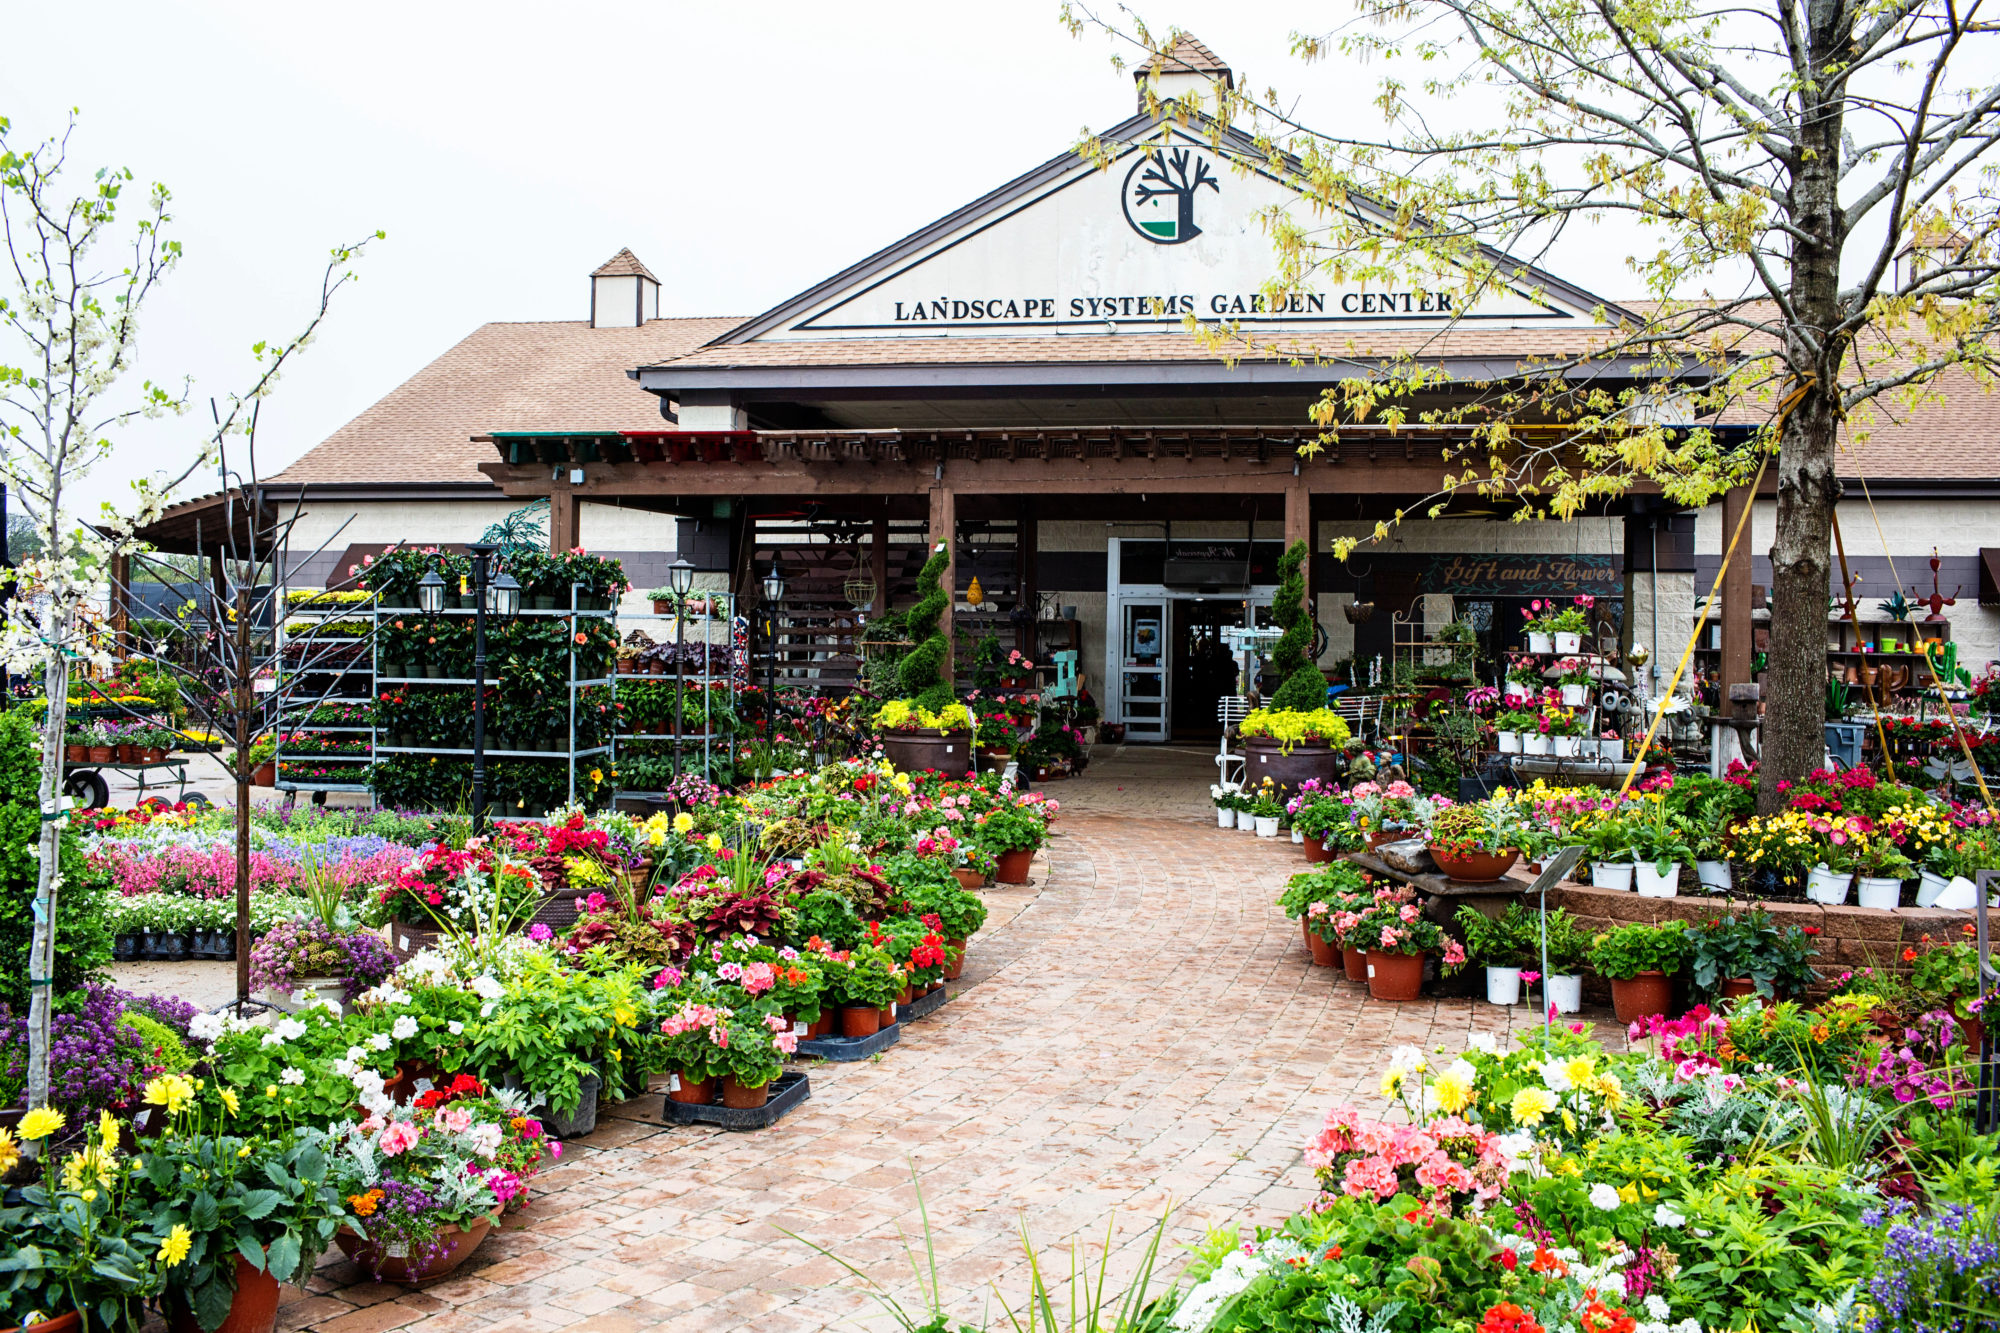 Landscape Systems Garden Center Nursery Gallery In Keller Tx